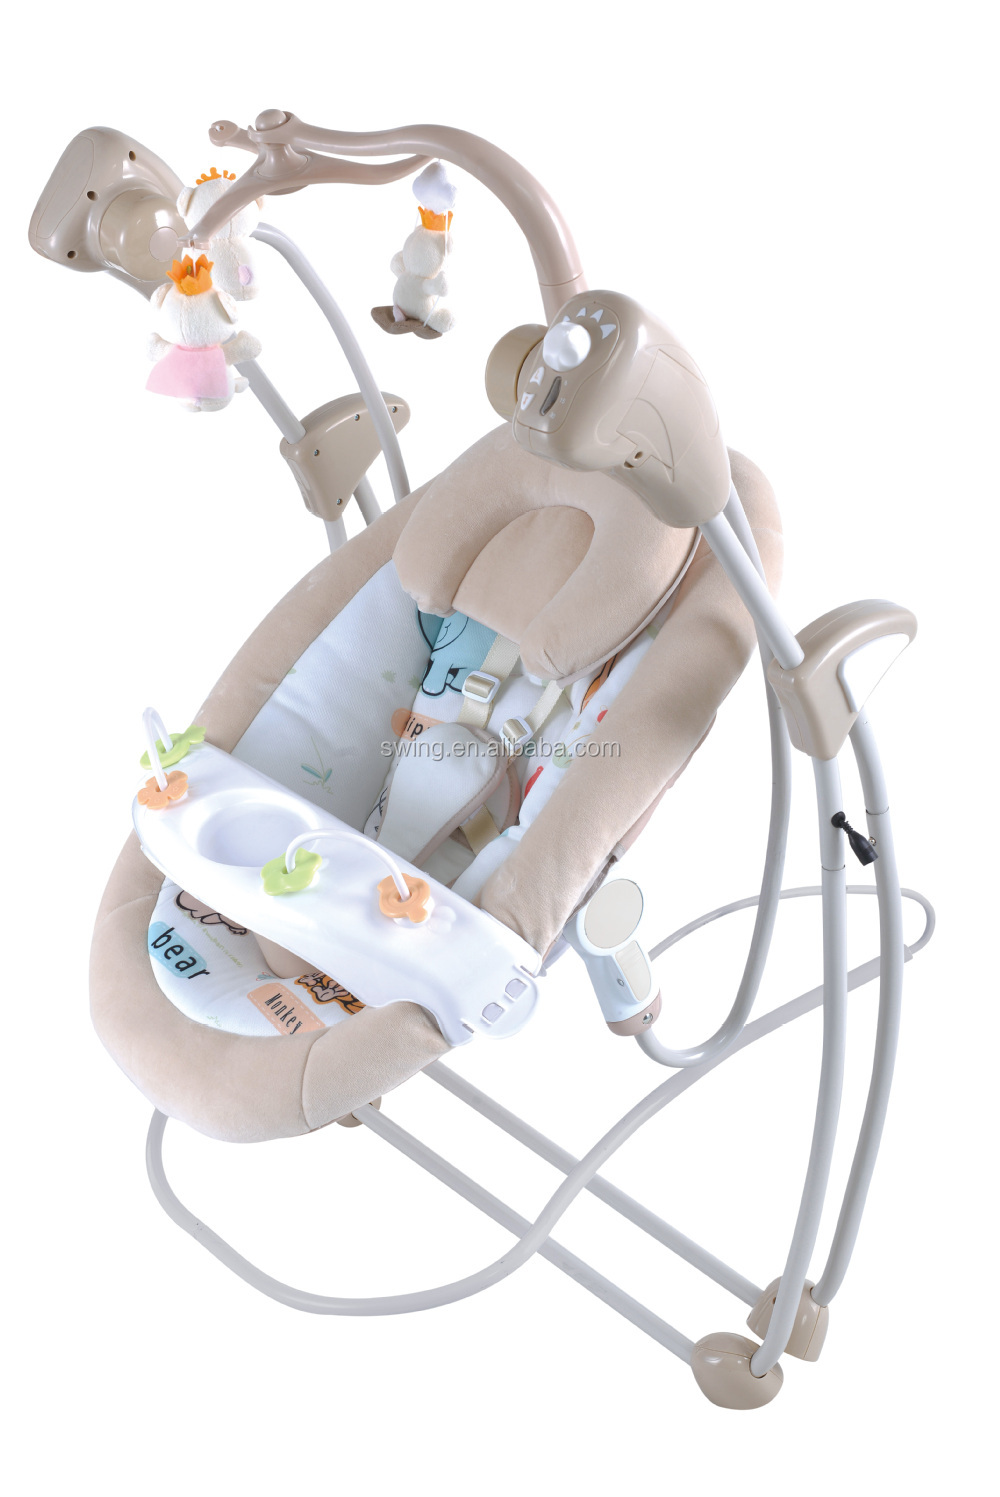 Hot selling 2 in1 baby rocking chair with 3 speeds vibration box